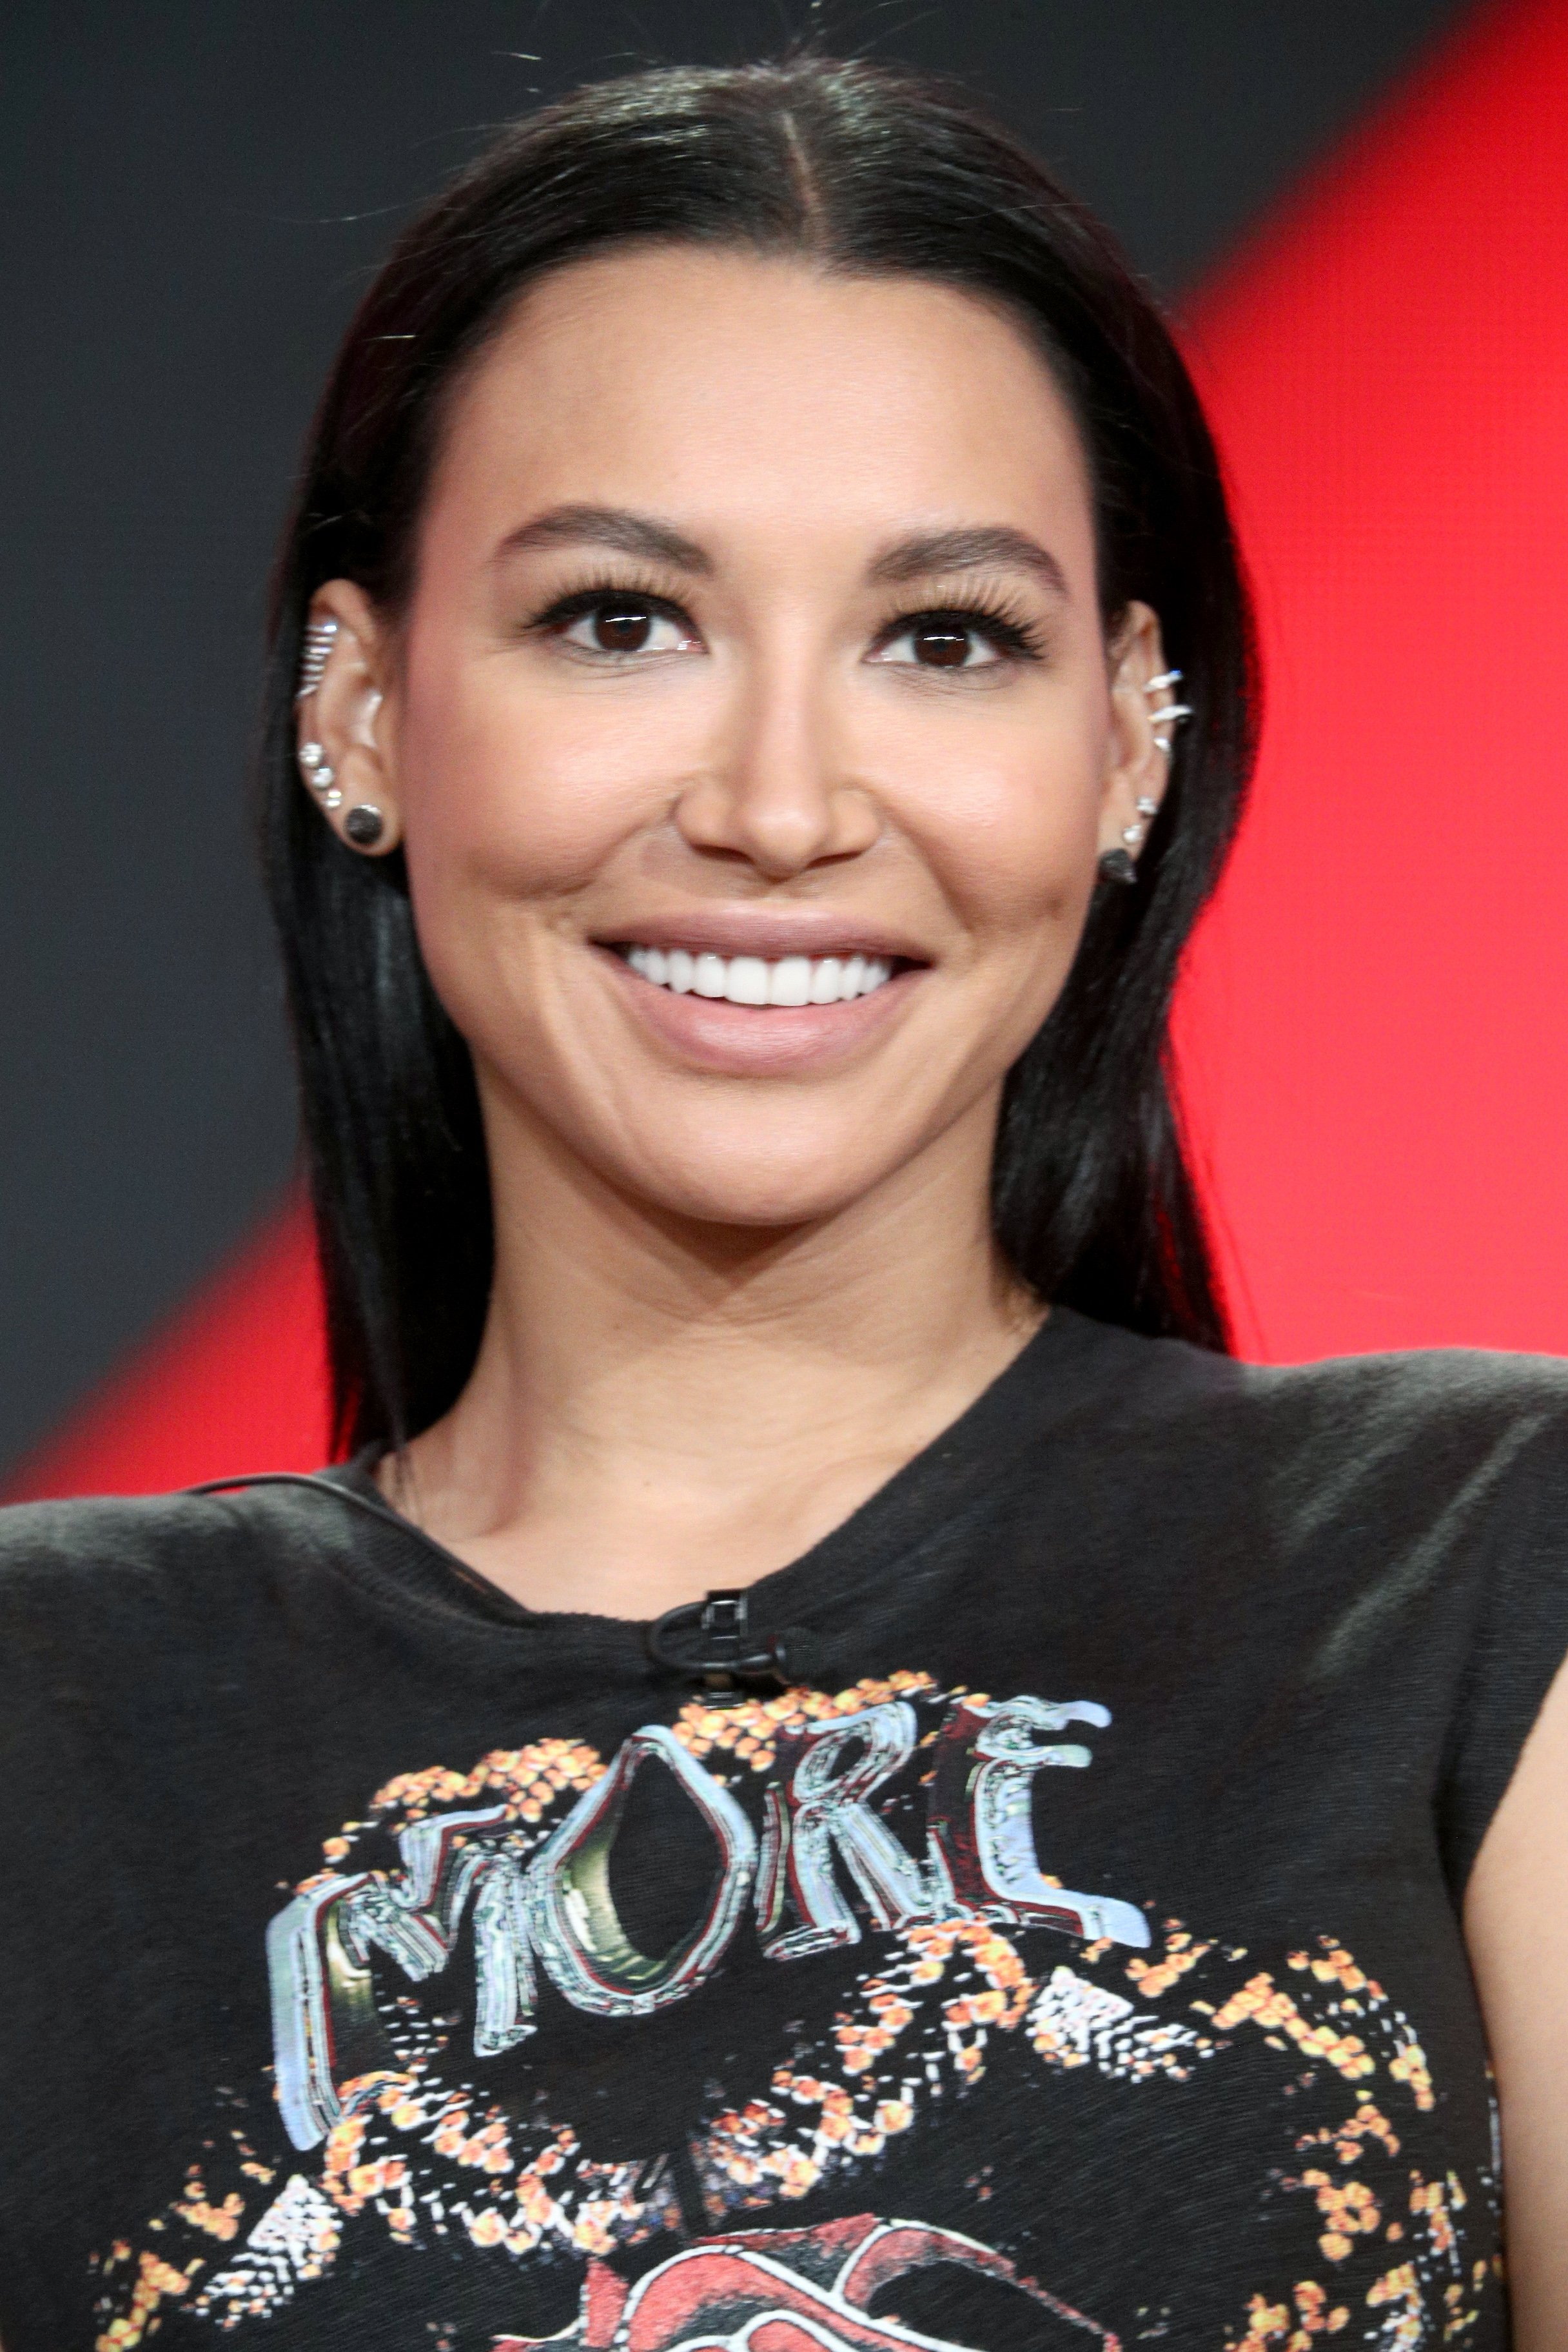 Image Credits: Getty Images | Naya Rivera passed away after swimming in a lake